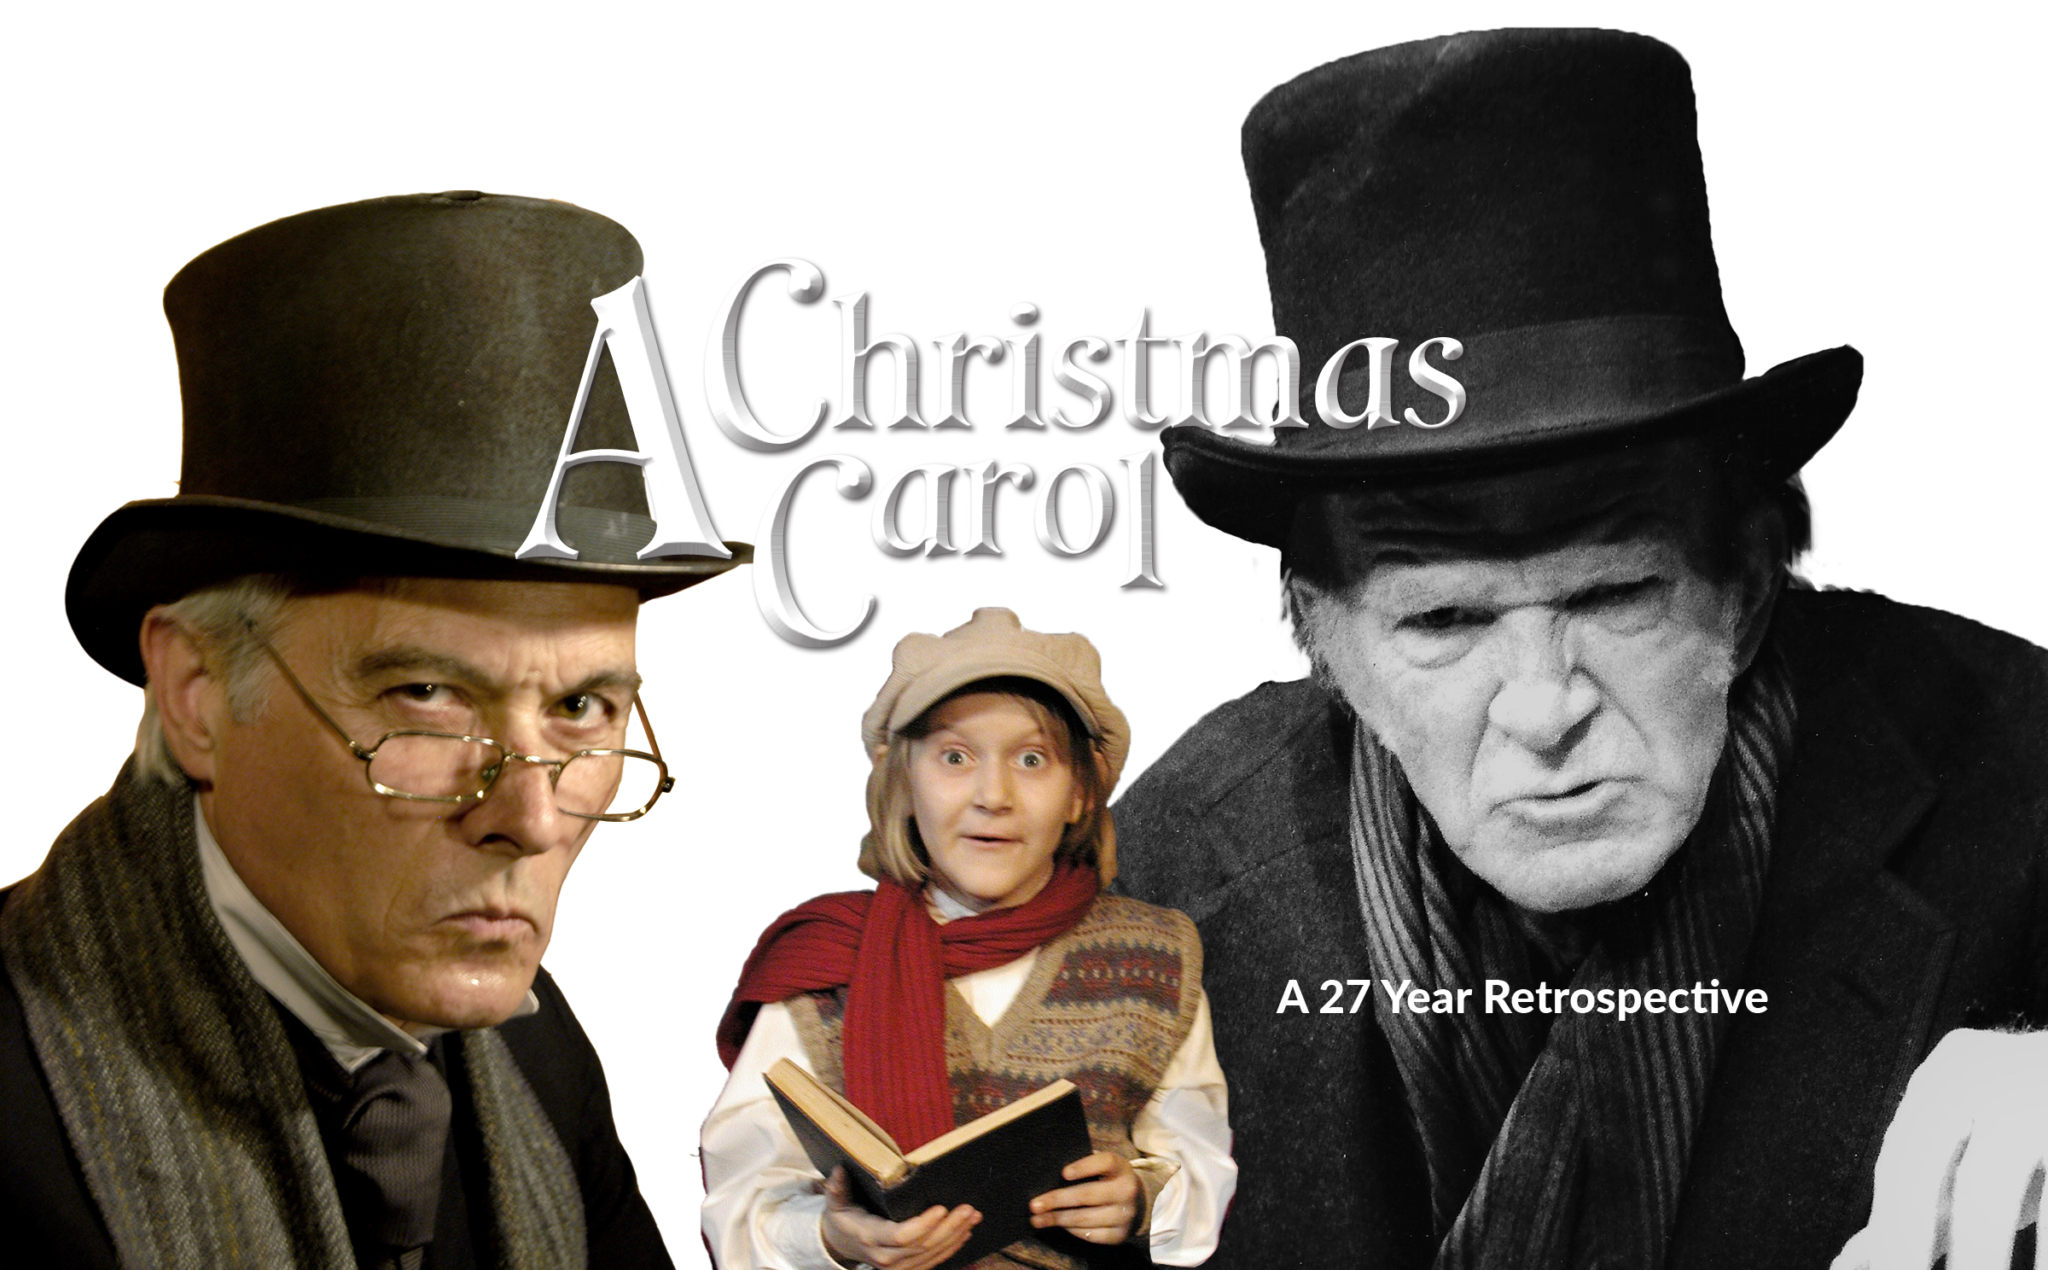 A Christmas Carol - A 27 Year Retrospective